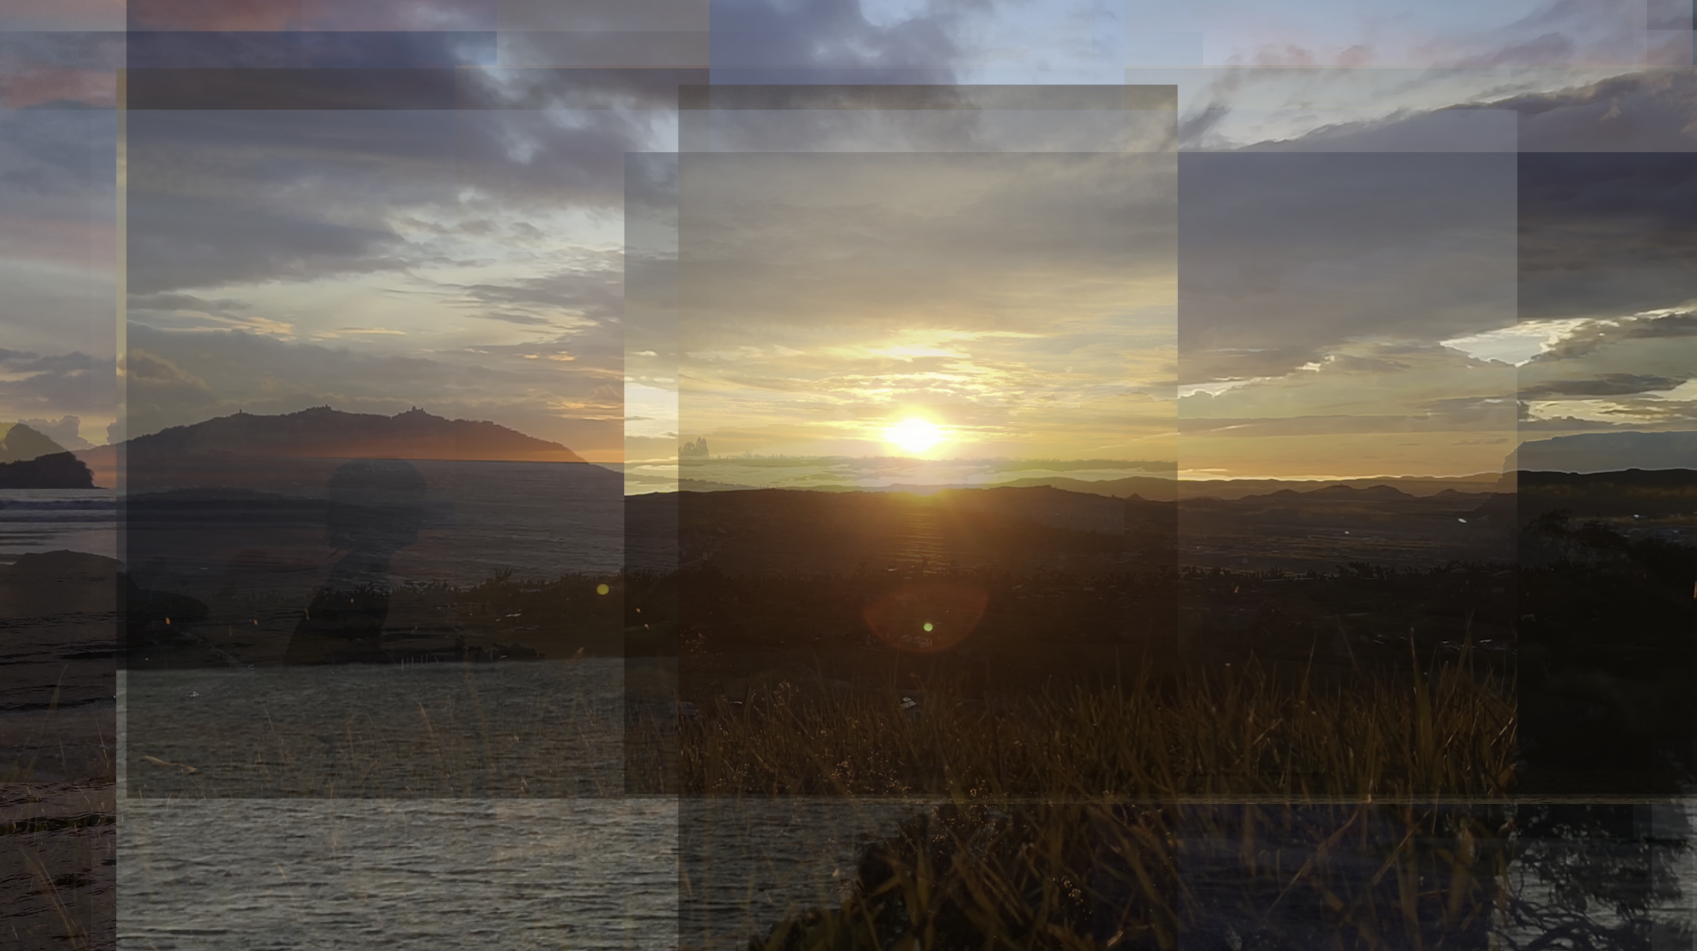 A composite image of a sunrise or sunset made of multiple overlapping photographs